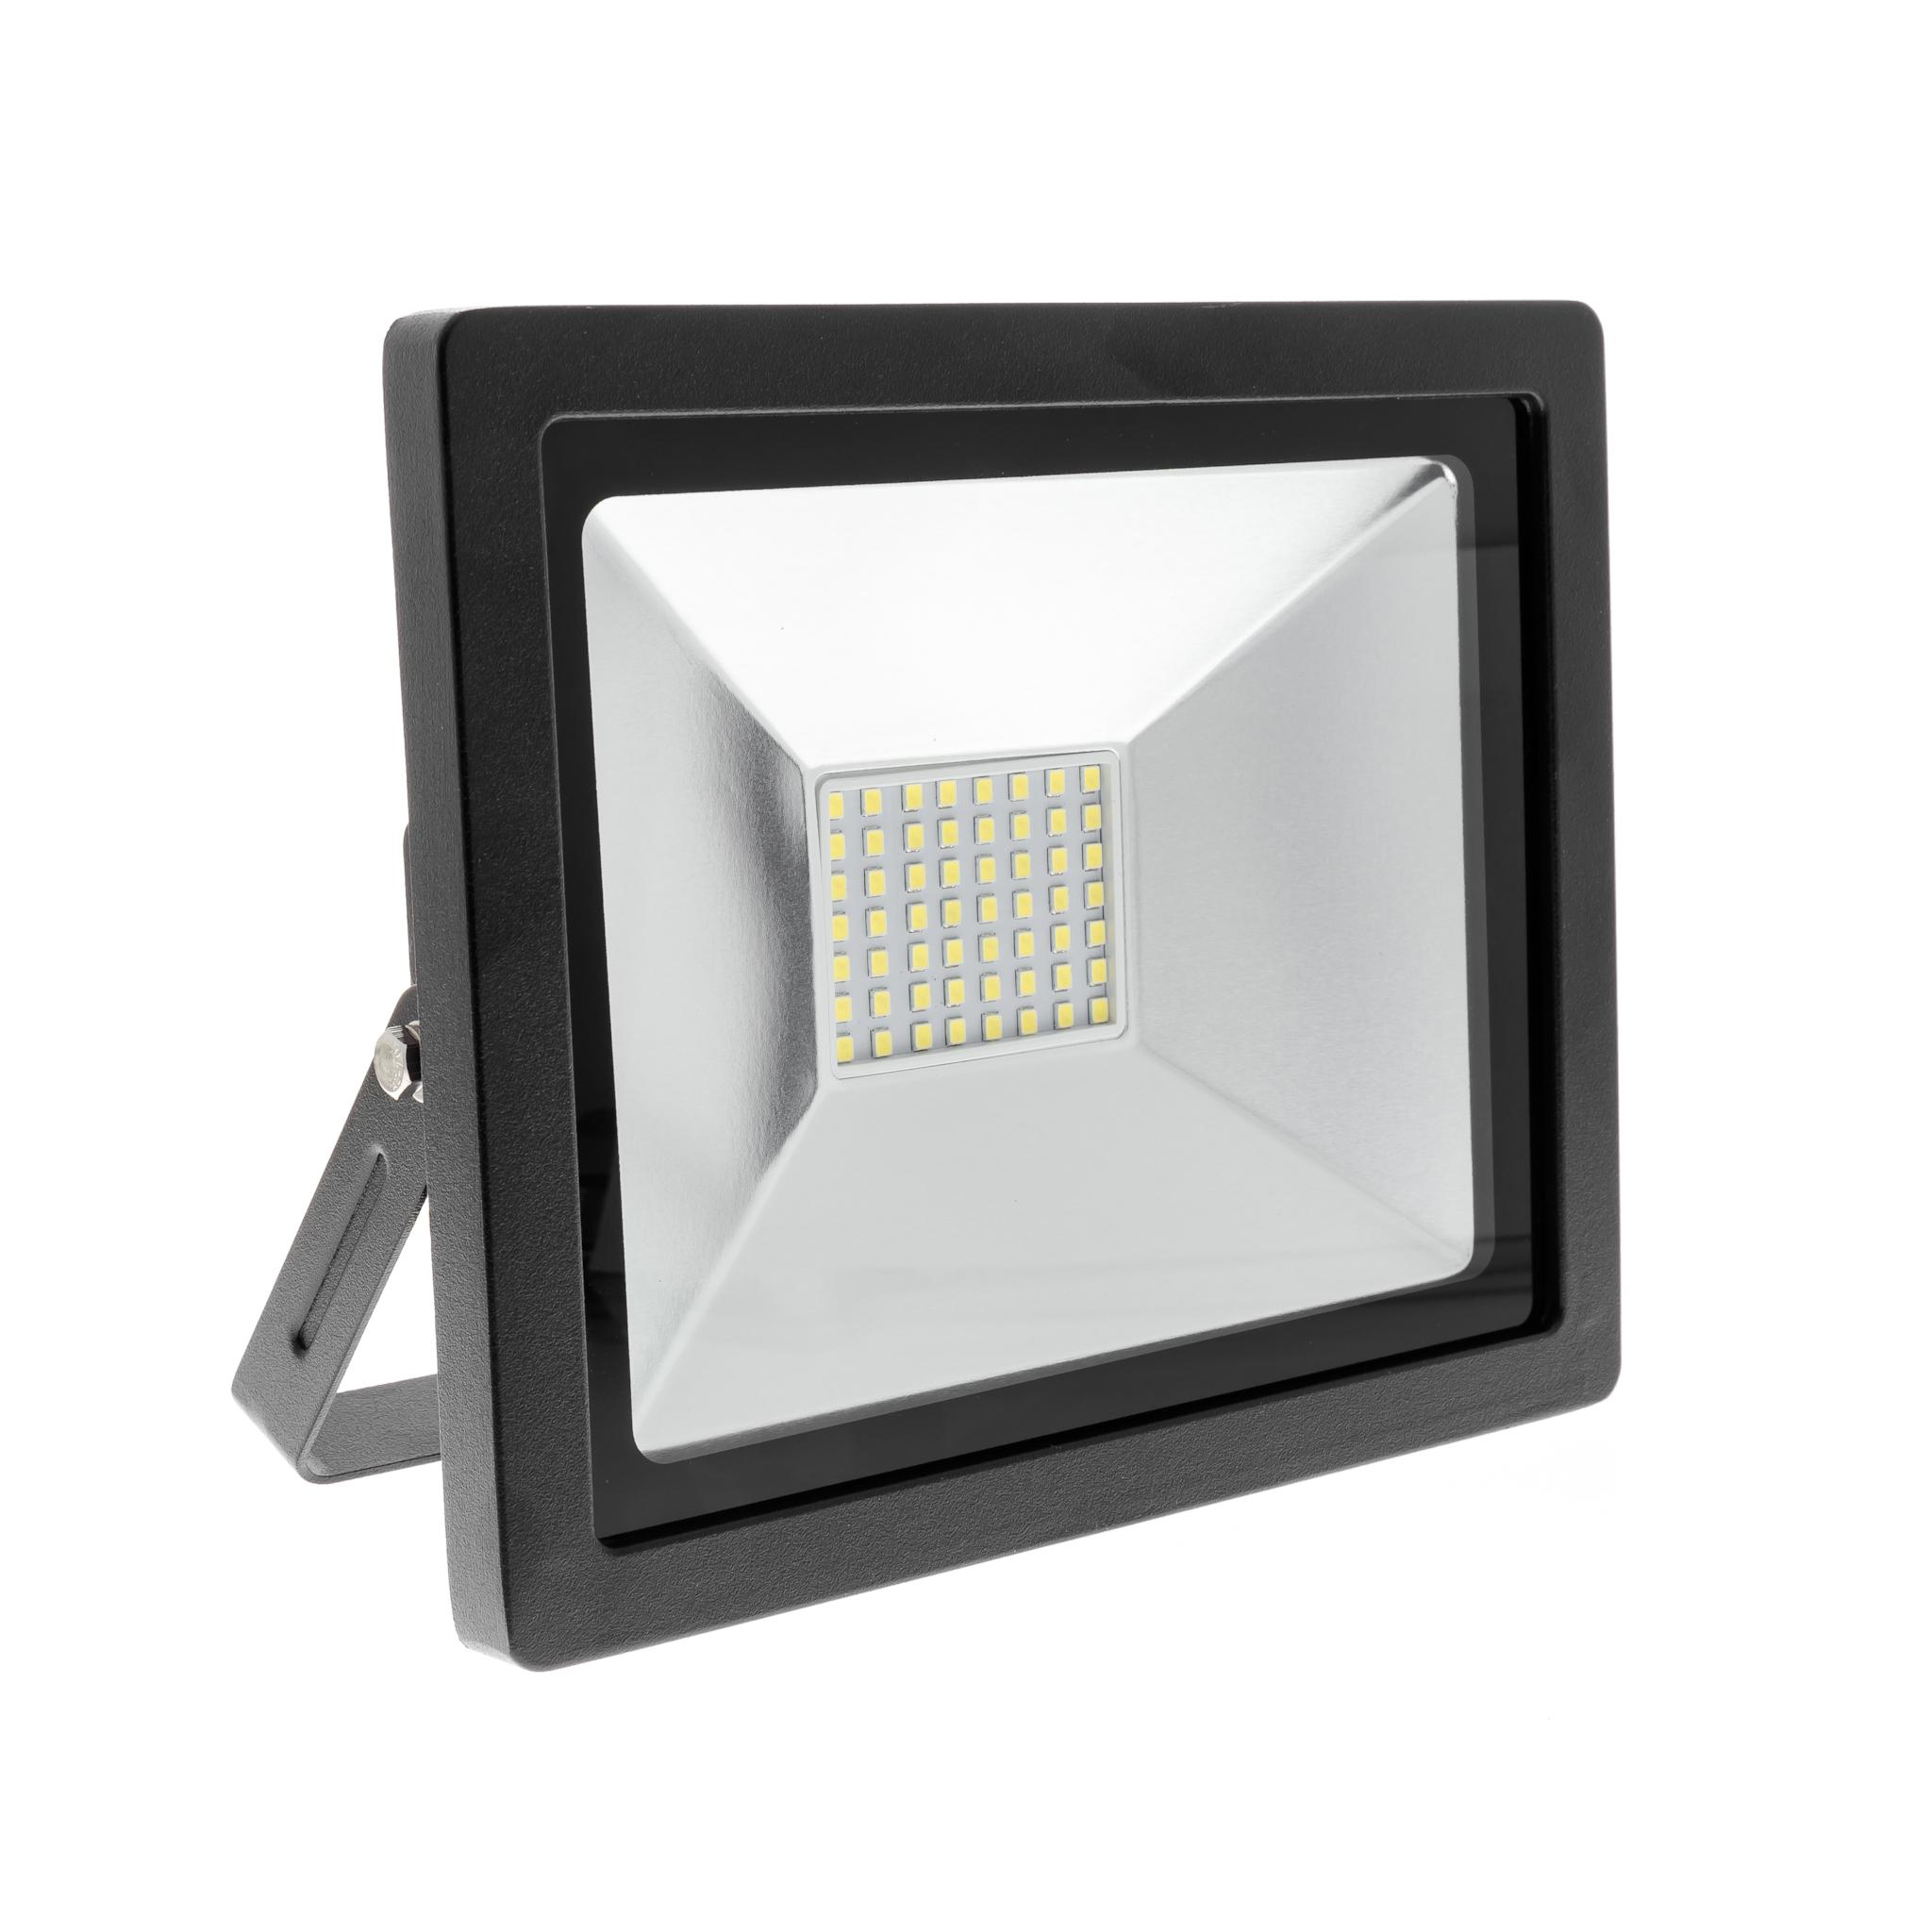 LED reflektor - Family RETLUX  - - - ks